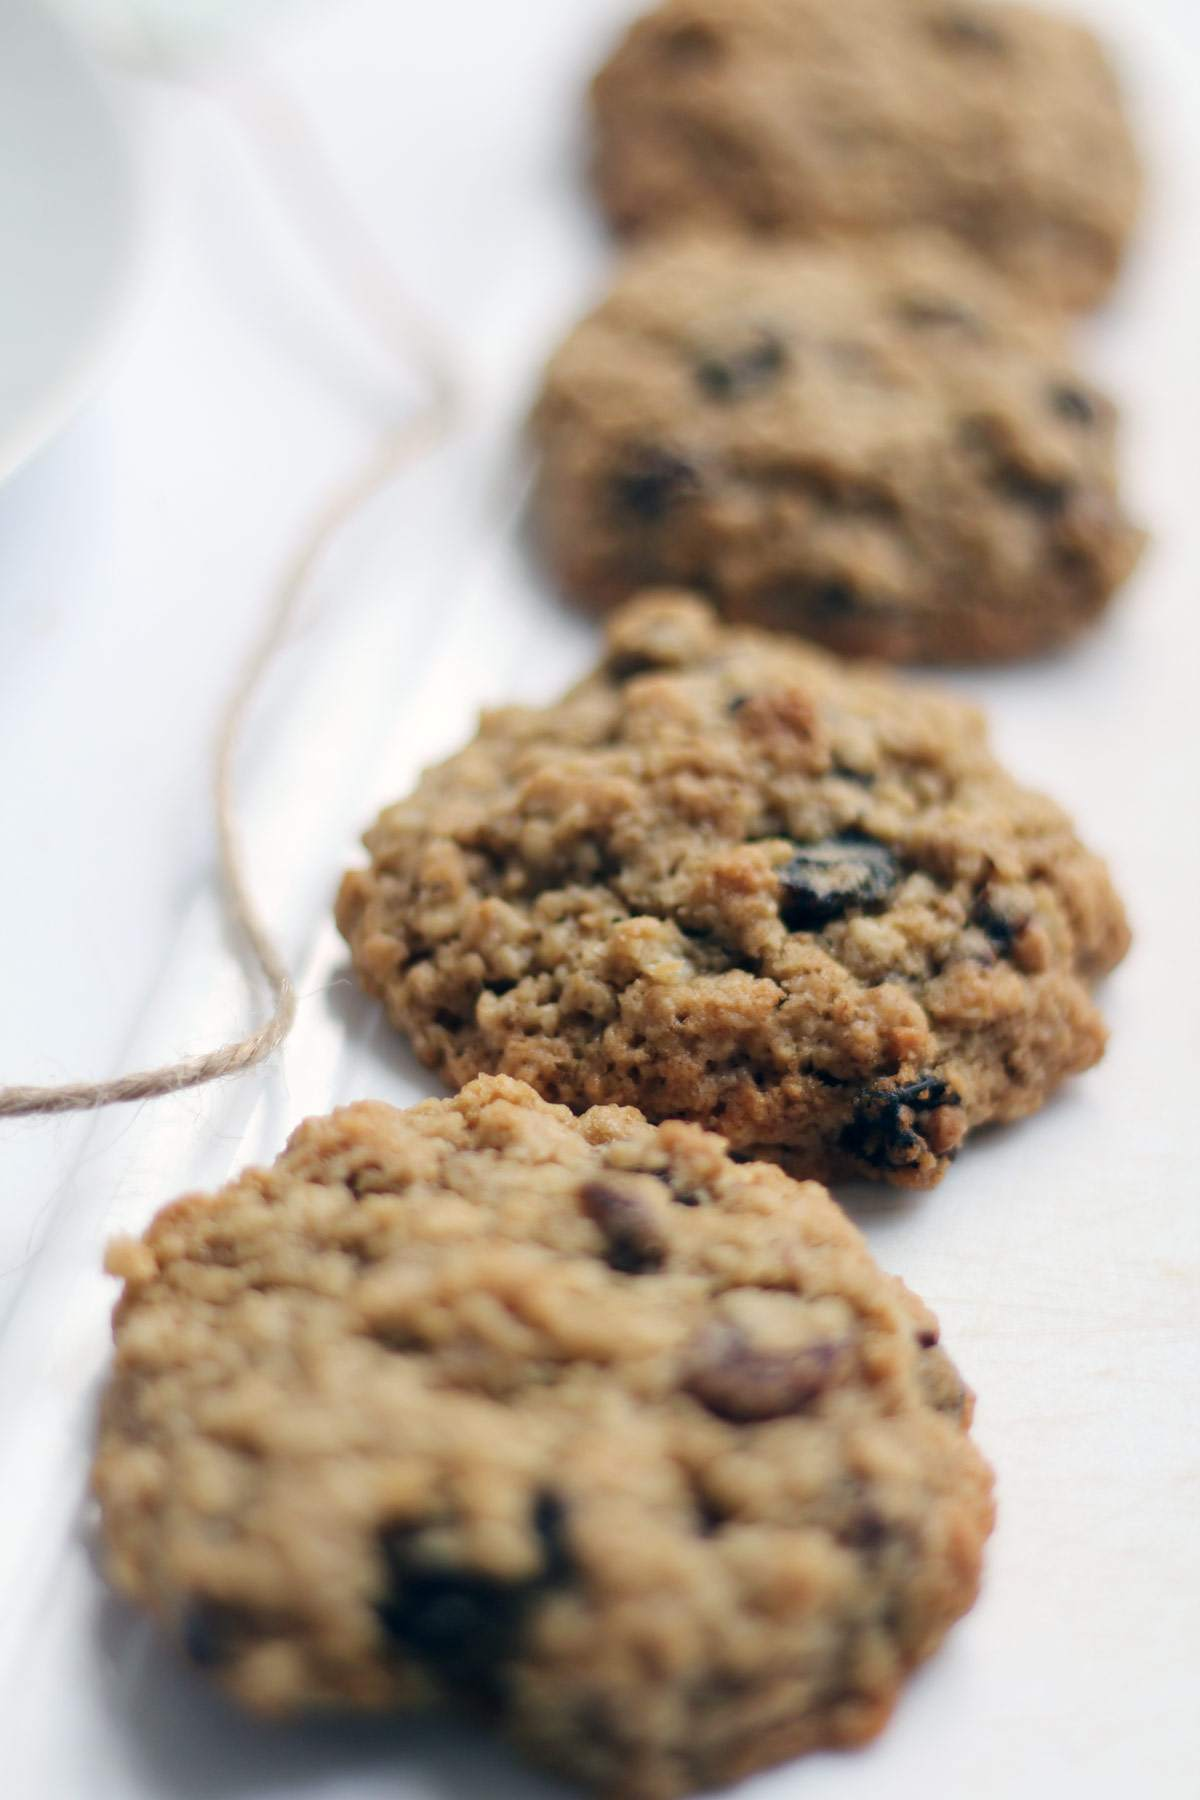 easy-oatmeal-raisin-cookie-recipe-traditional-cookies-food-blogger-4